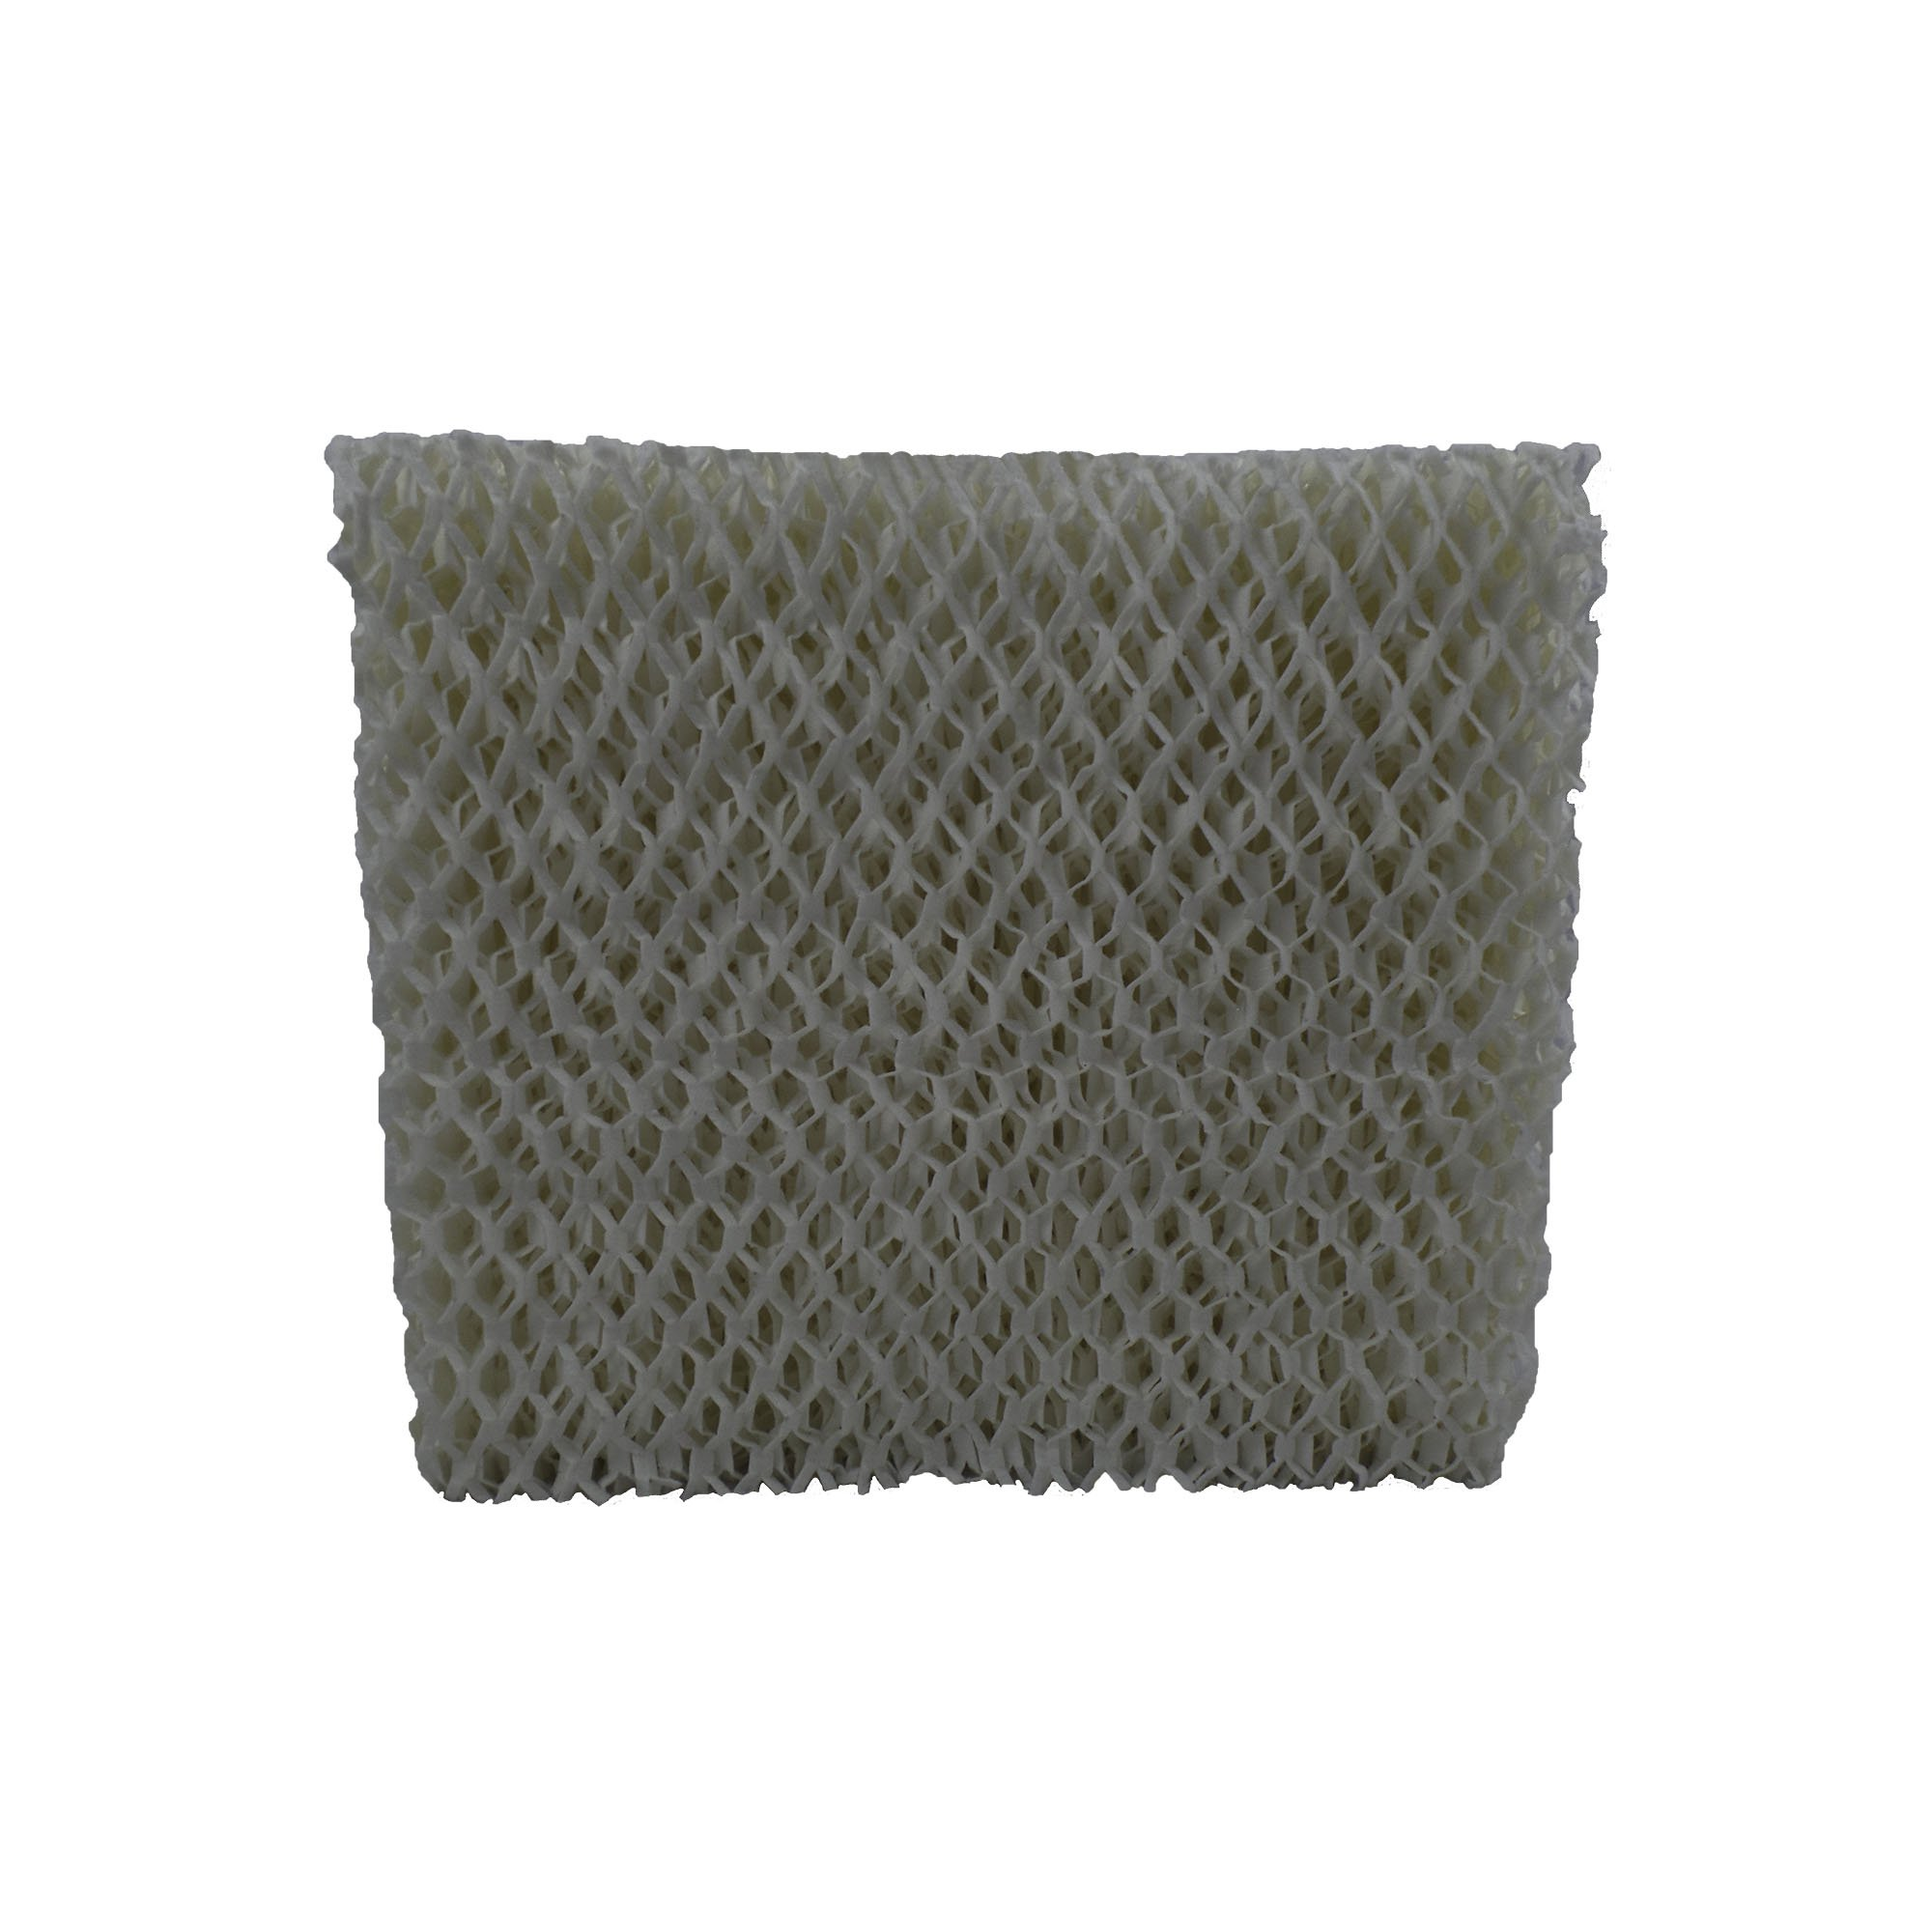 Air Filter Factory Compatible Replacement For Duracraft DH807, AC-809, DH803, DH804, DH805 Humidifier Filter